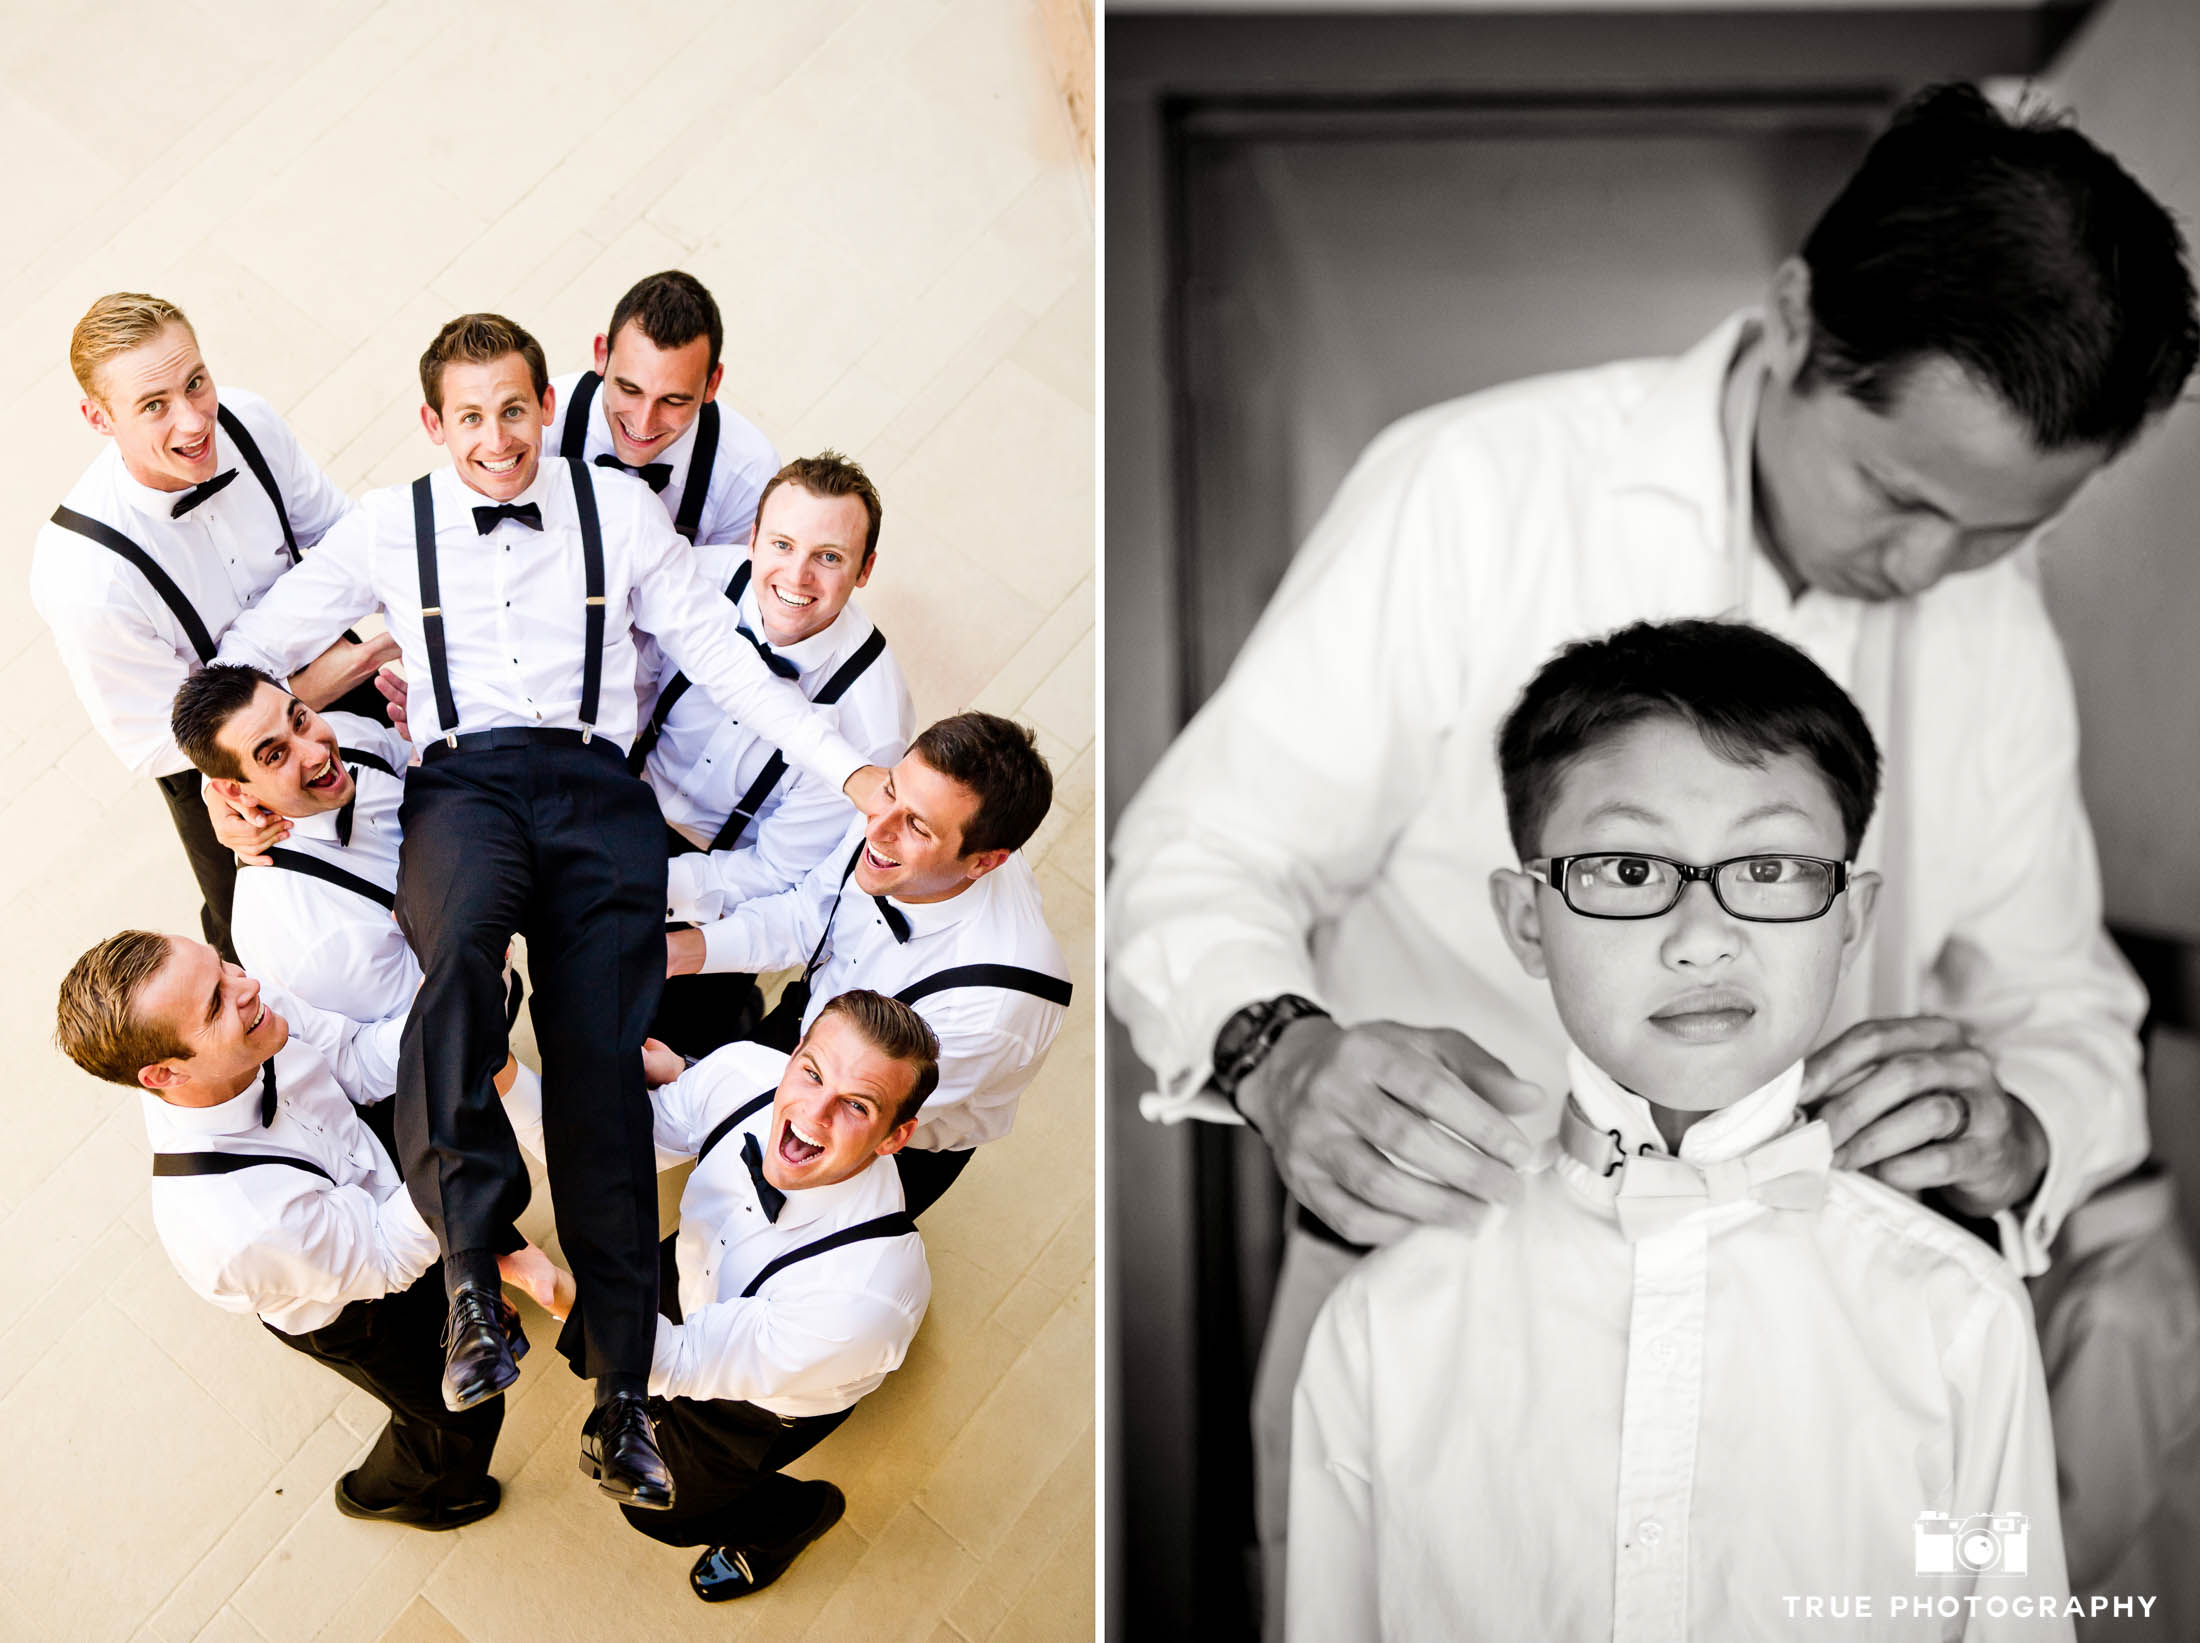 Groomsmen have fun during pre-ceremony